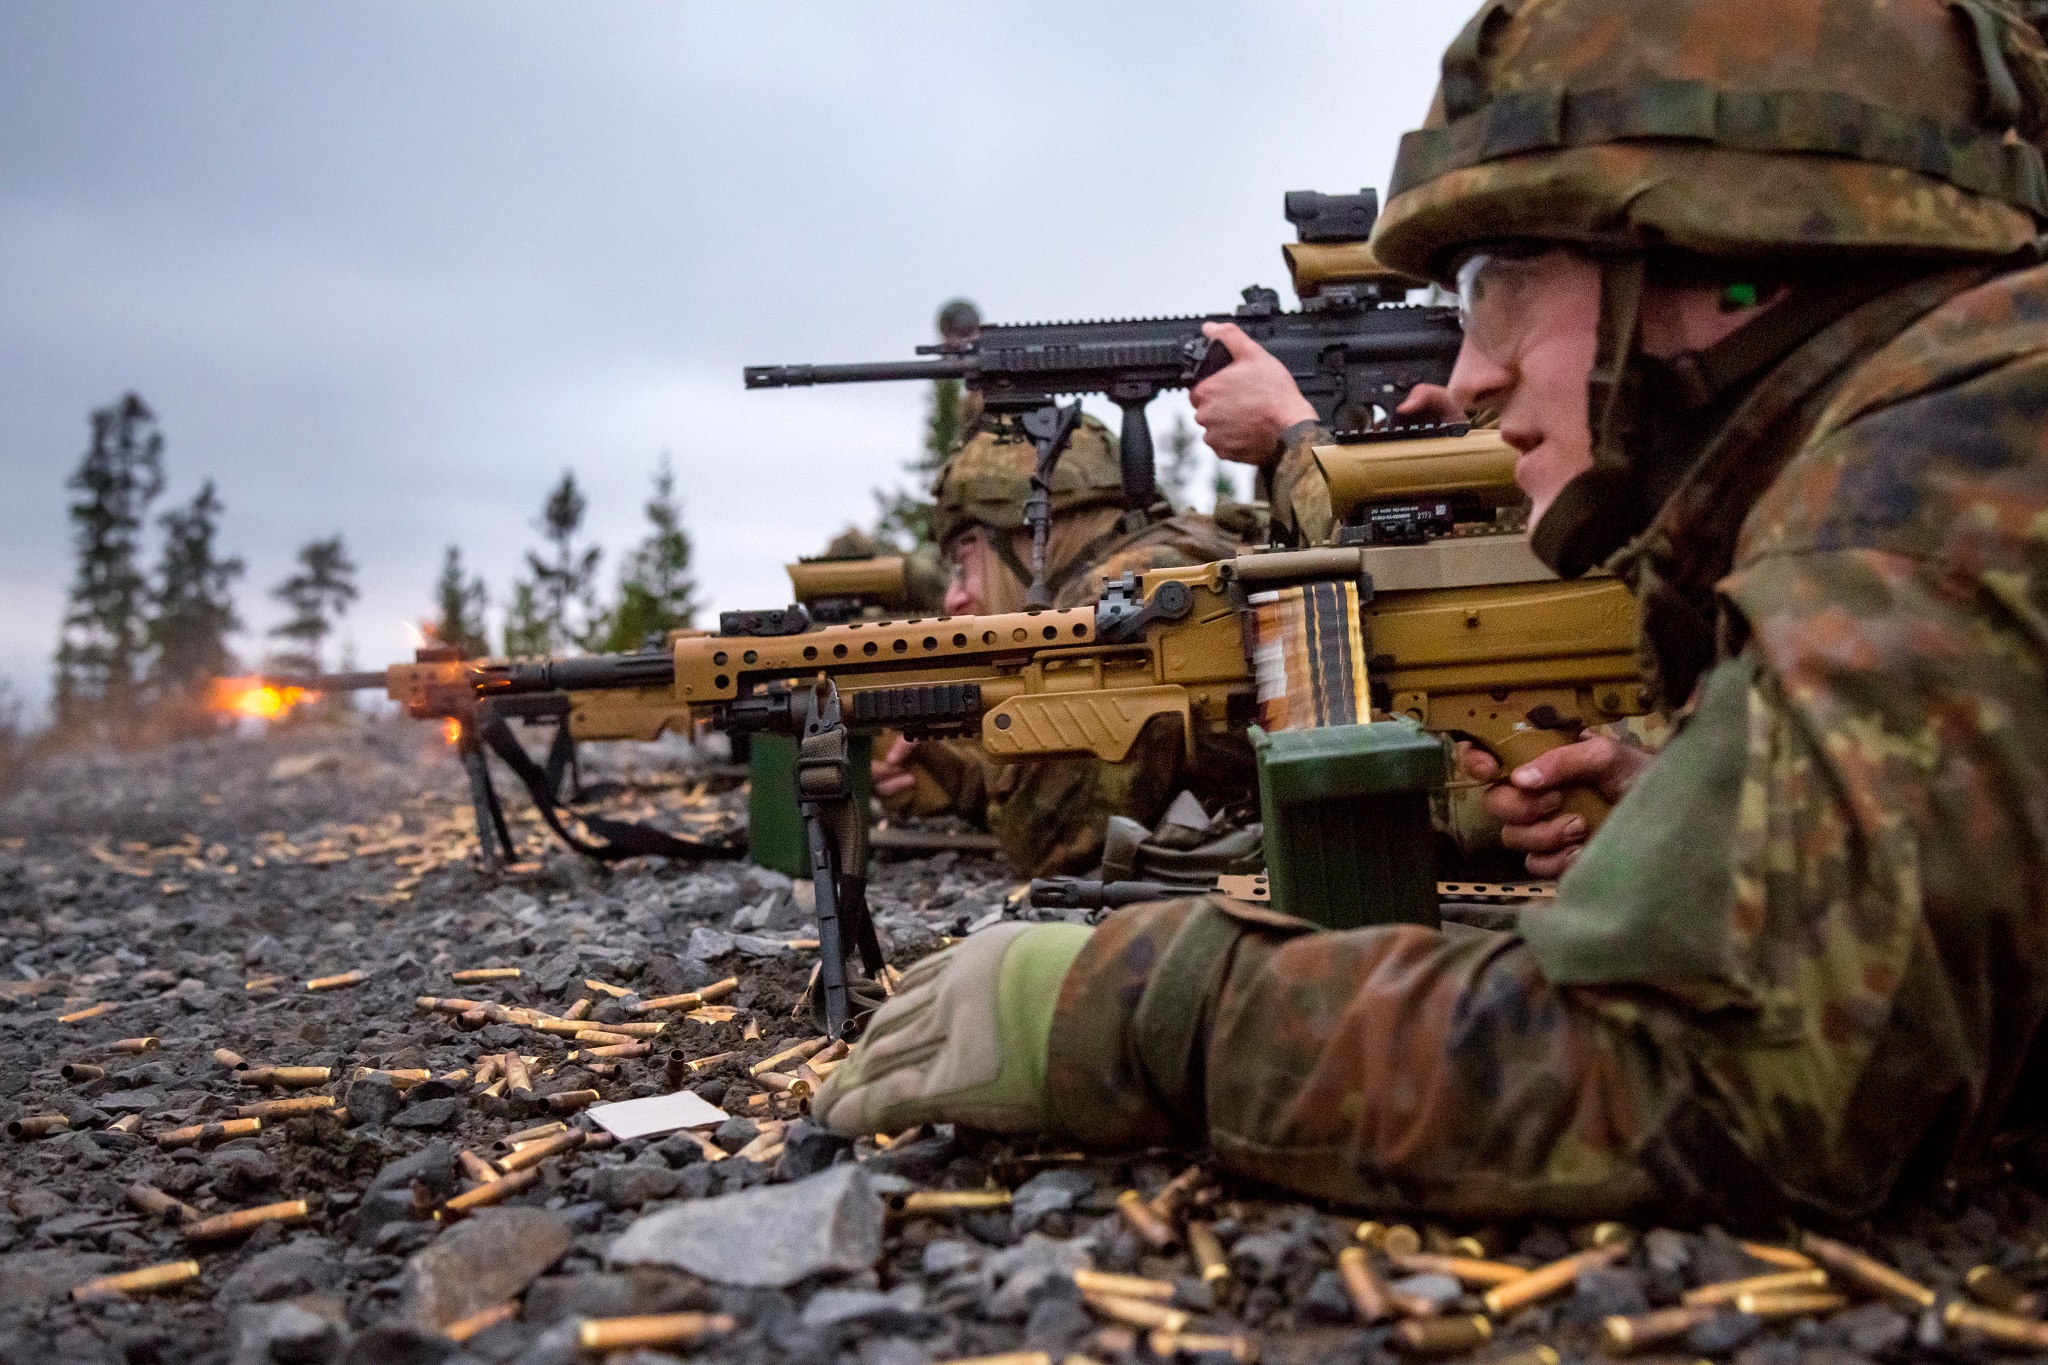 Harmonization of small arms of the Bundeswehr